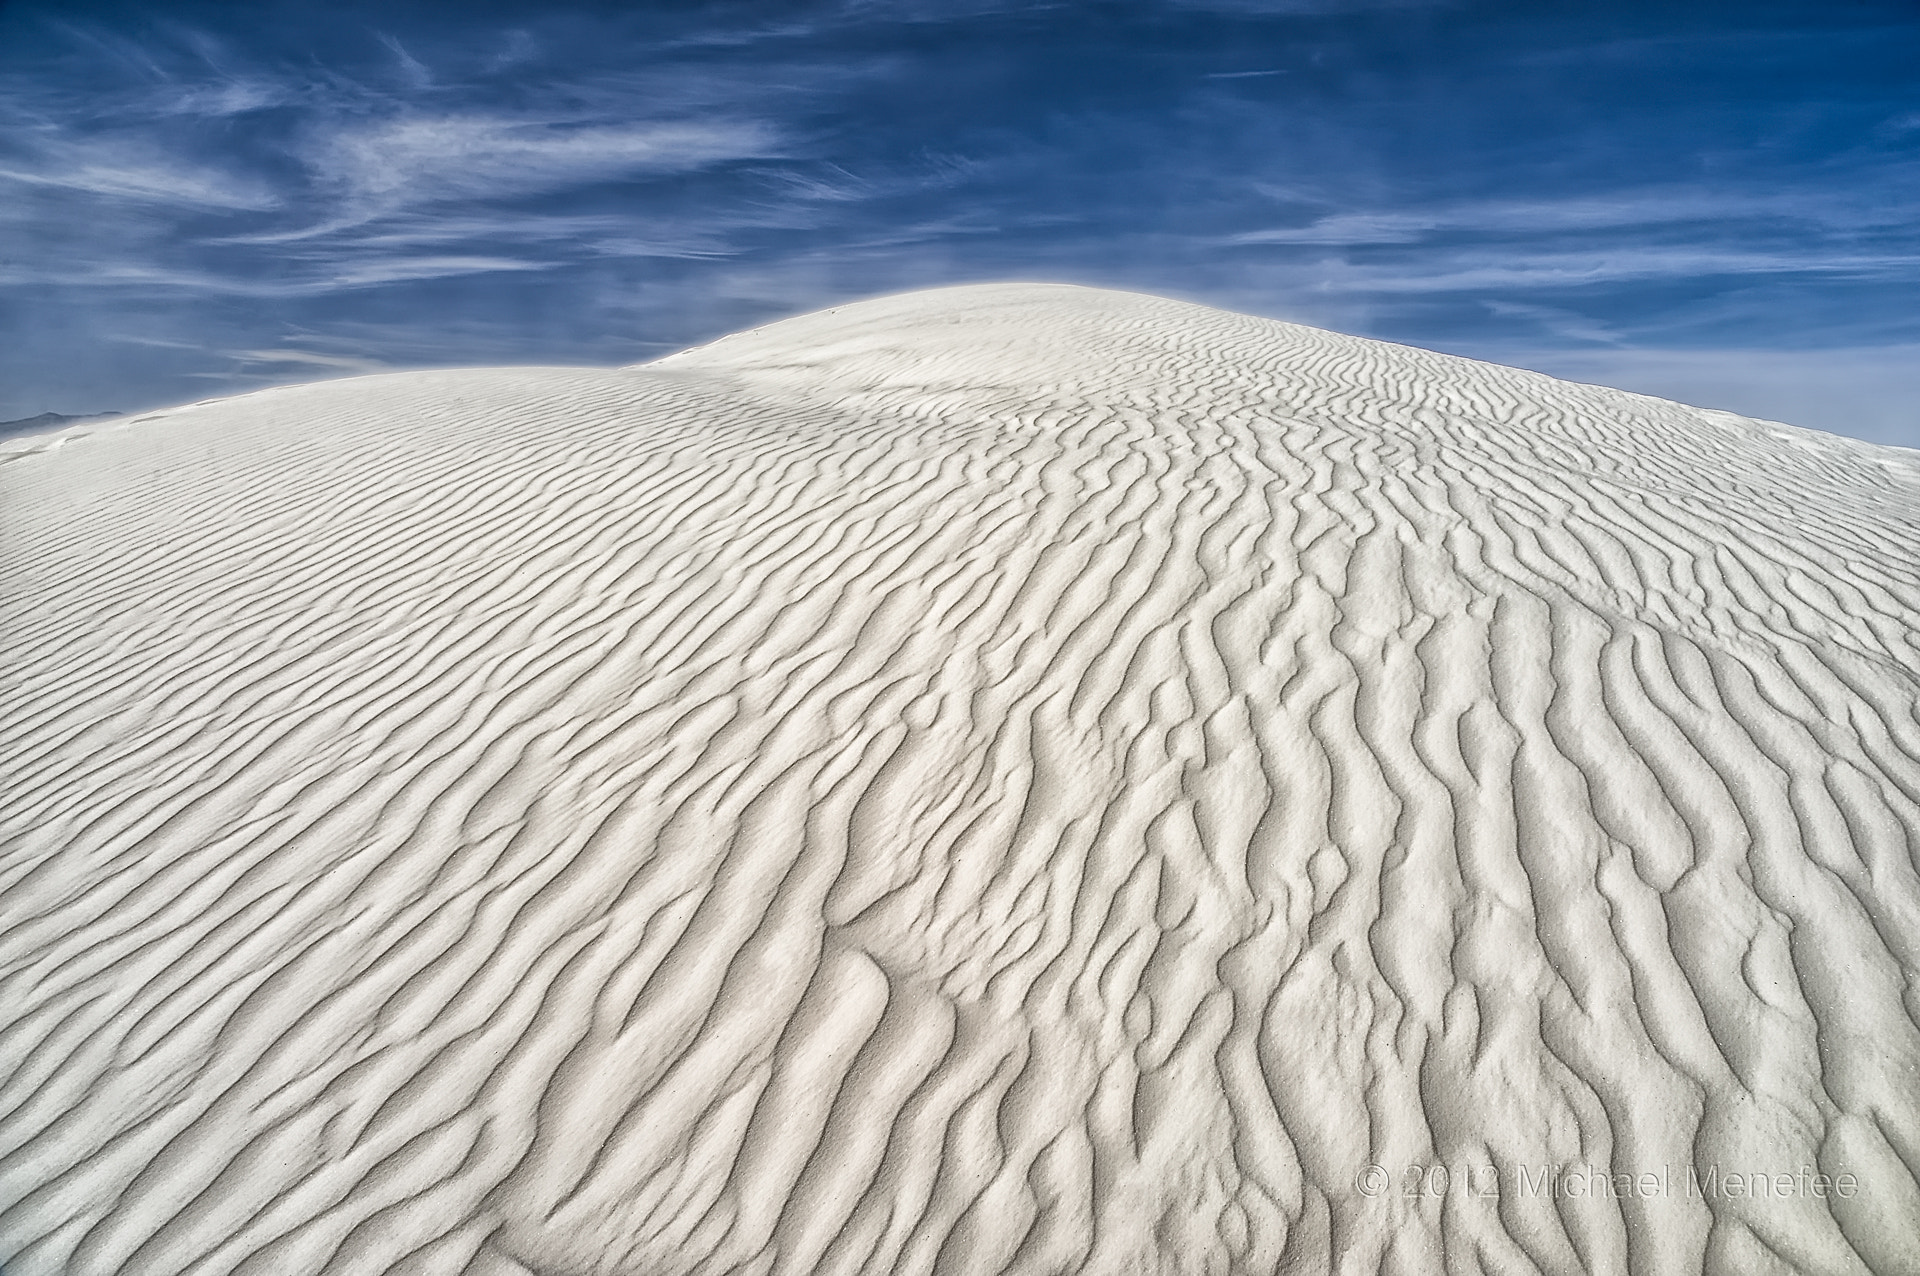 Photograph The Contours of White Sands National Monument by Michael Menefee on 500px